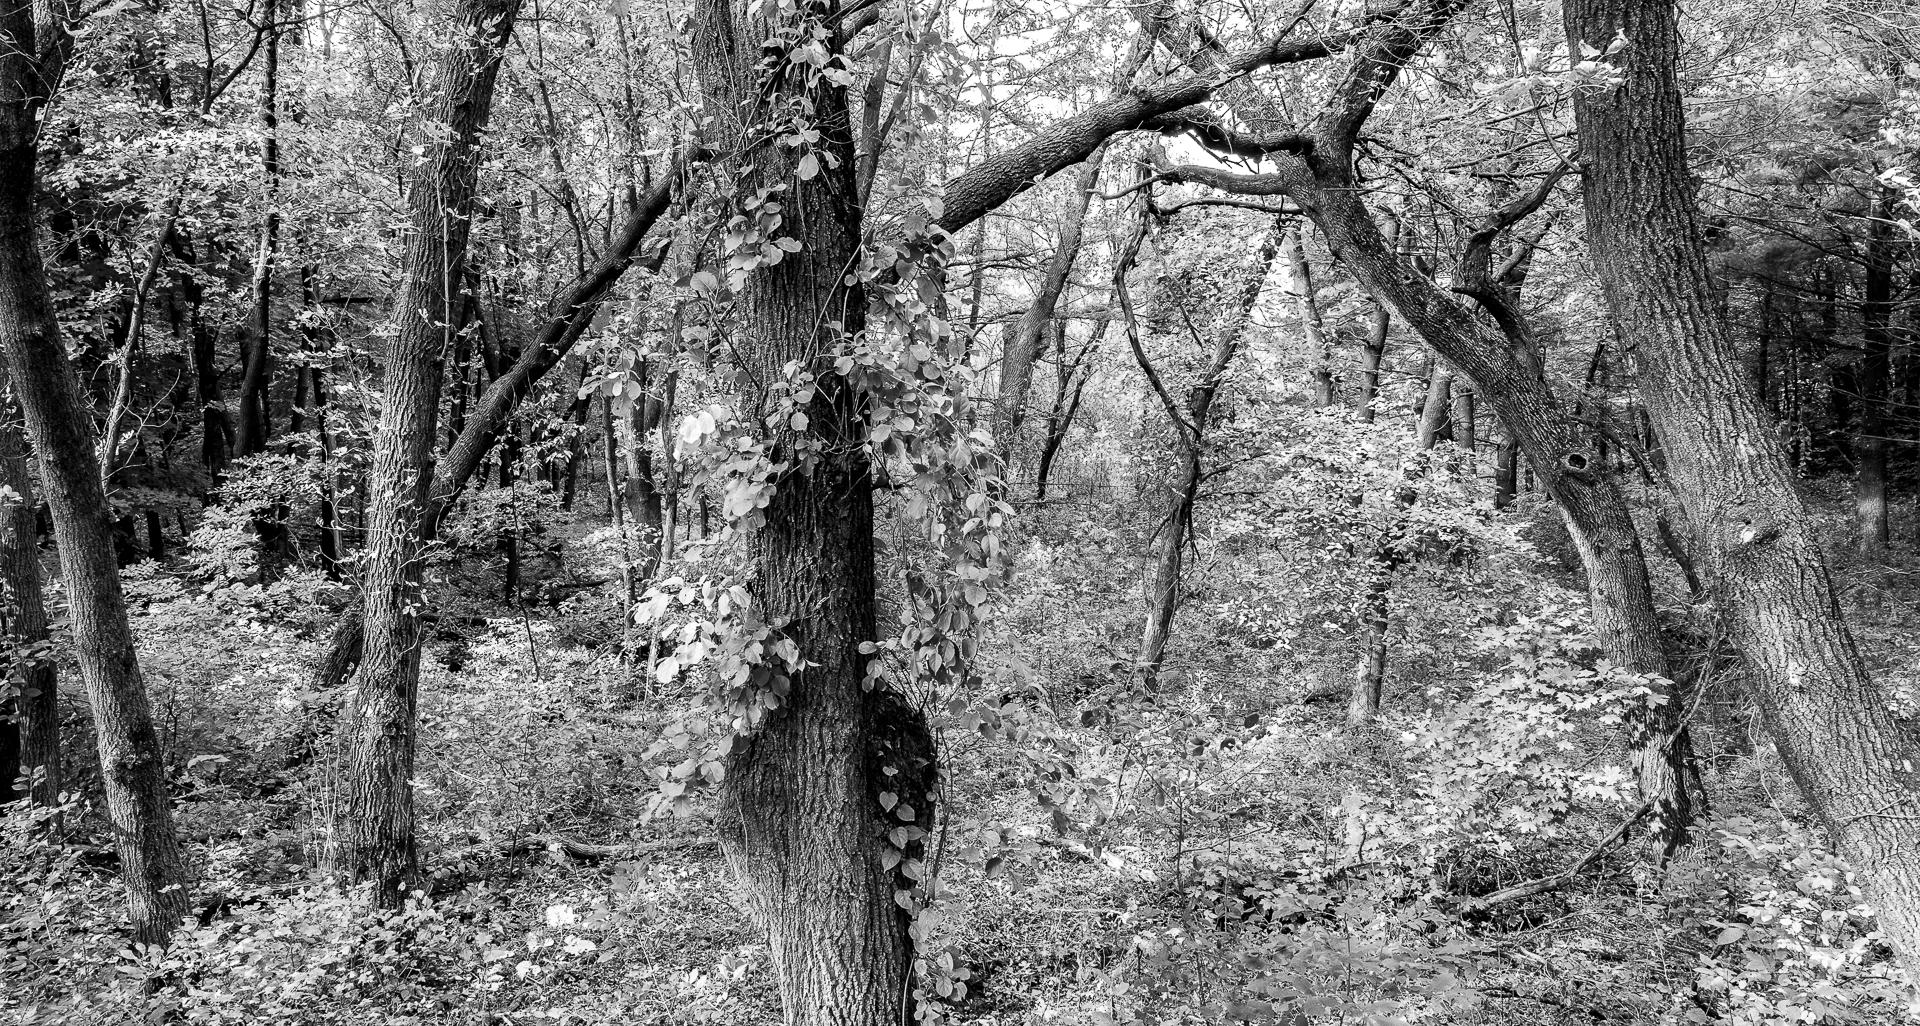 University of Minnesota Arboretum : monochrom : TIMOTHY FLOYD PHOTOGRAPHER, NATURE PHOTOGRAPHY, PHOTO ESSAYS, PHOTOJOURNALISM